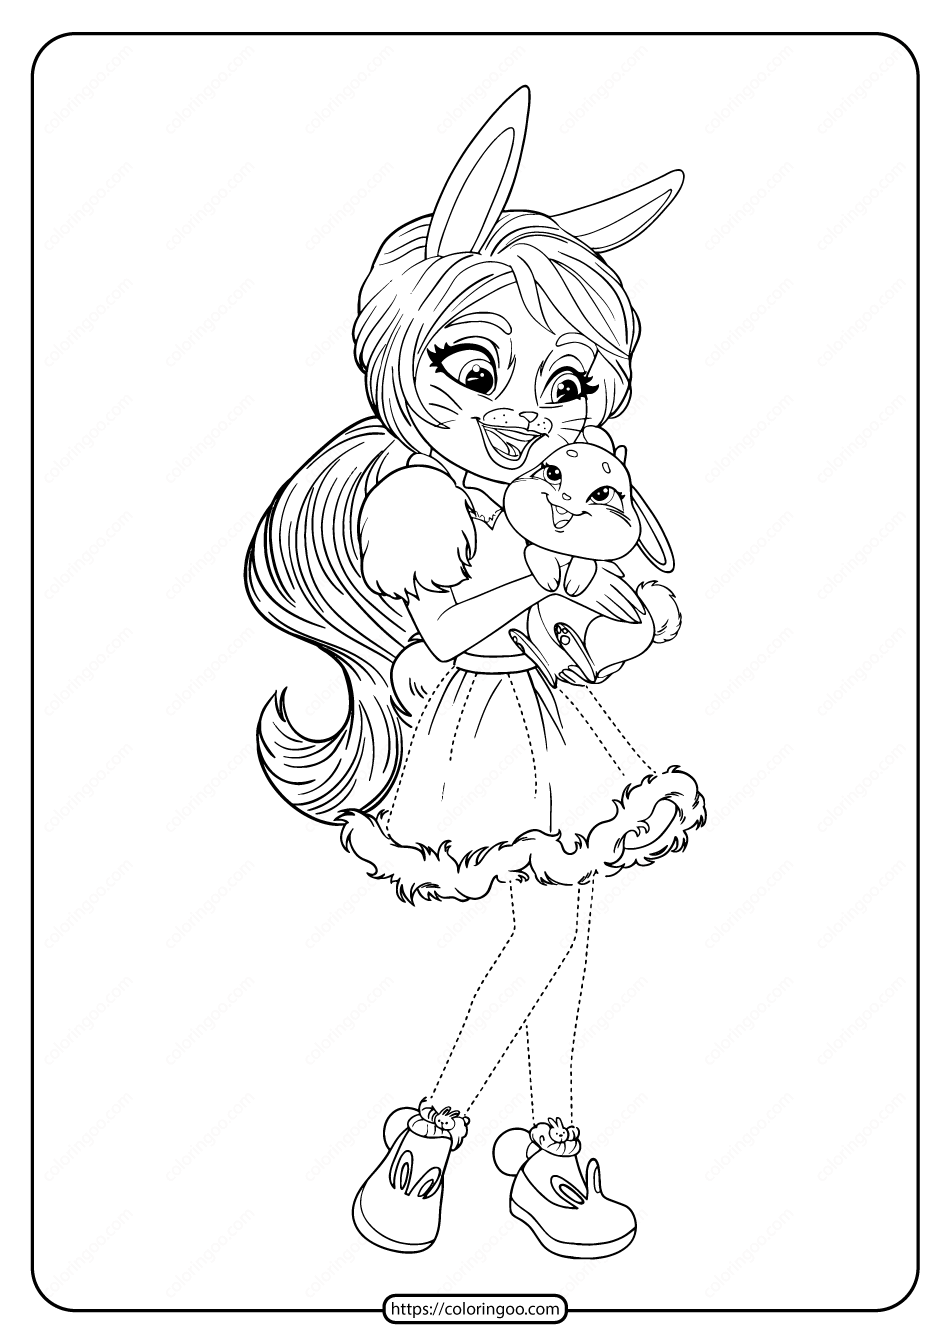 Printable Enchantimals Bree Bunny Twist Coloring Page